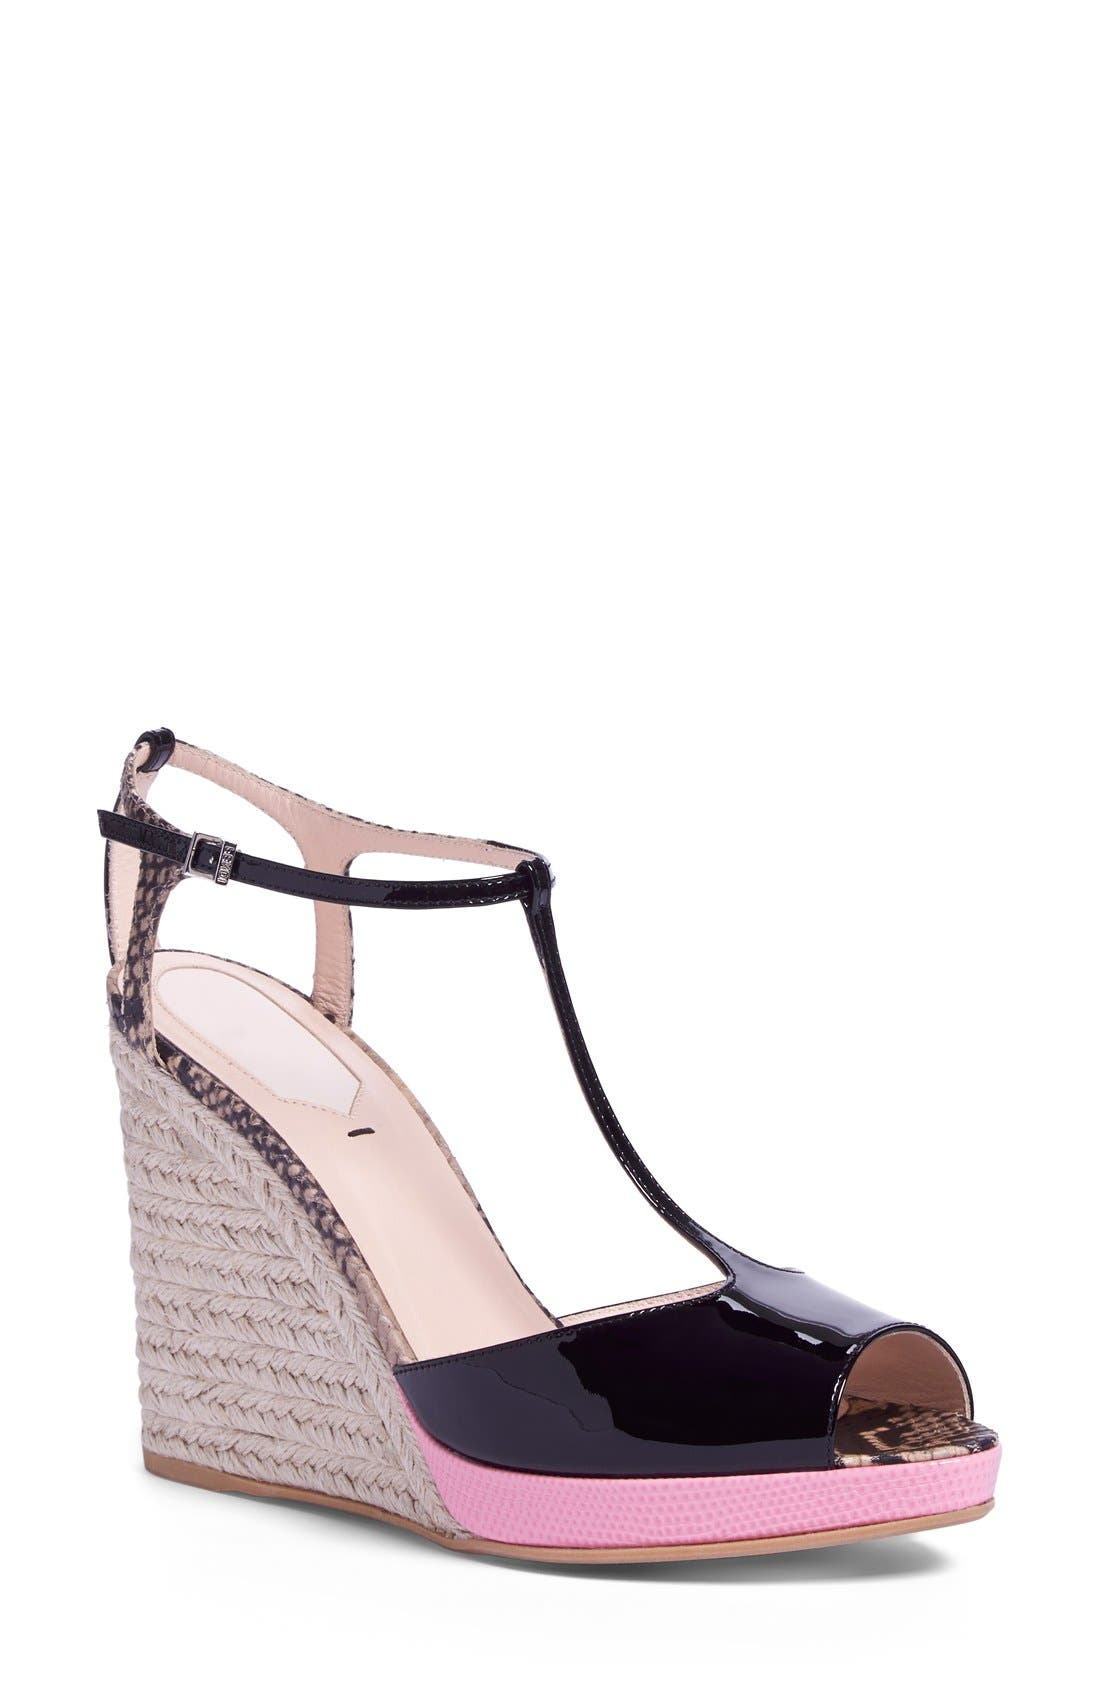 'Elodie' T-Strap Wedge Sandal,                             Main thumbnail 1, color,                             002